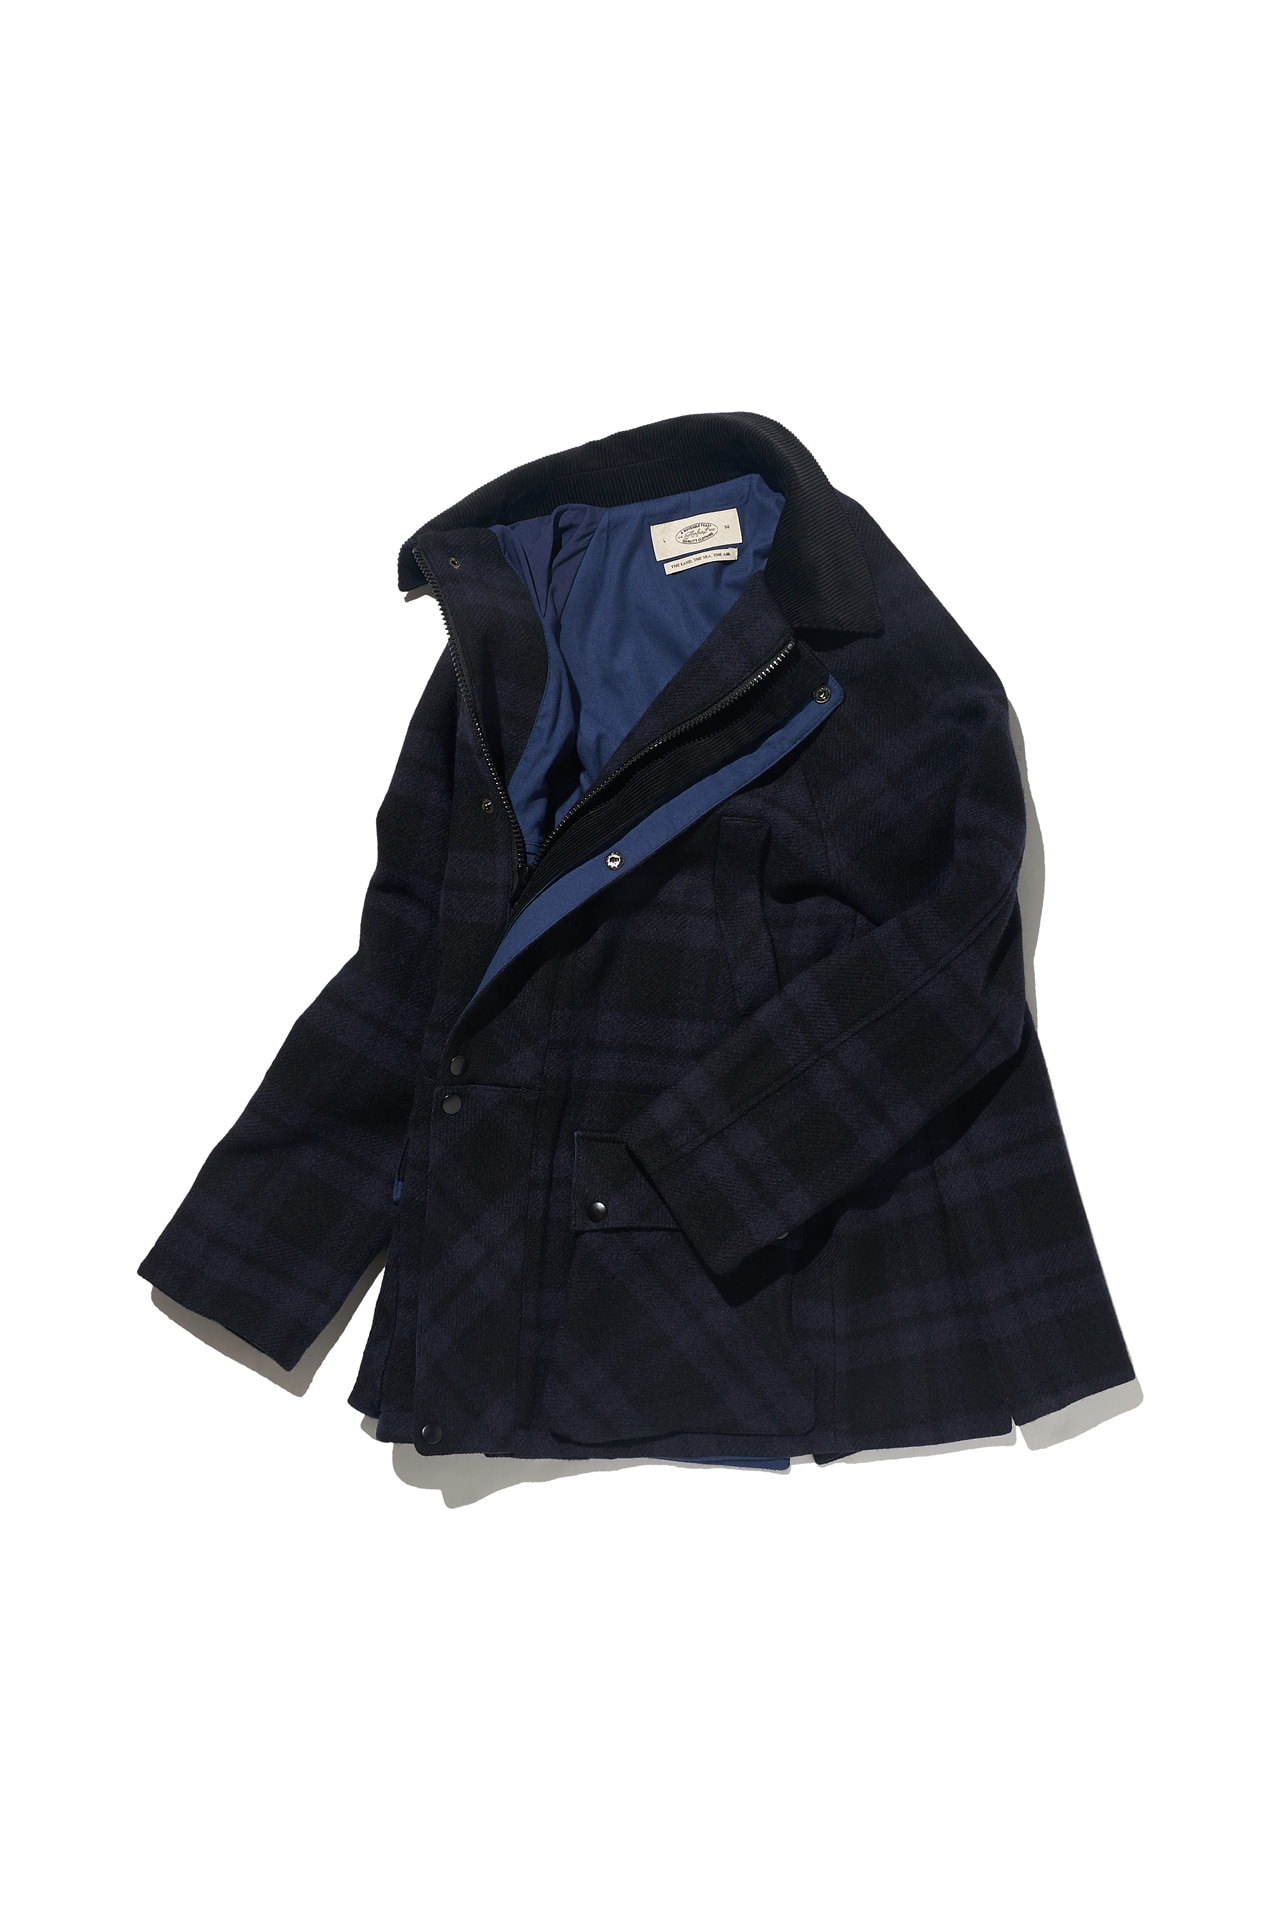 [Amfeast] NAVY TARTAN SIGNATURE CITY HALF COAT